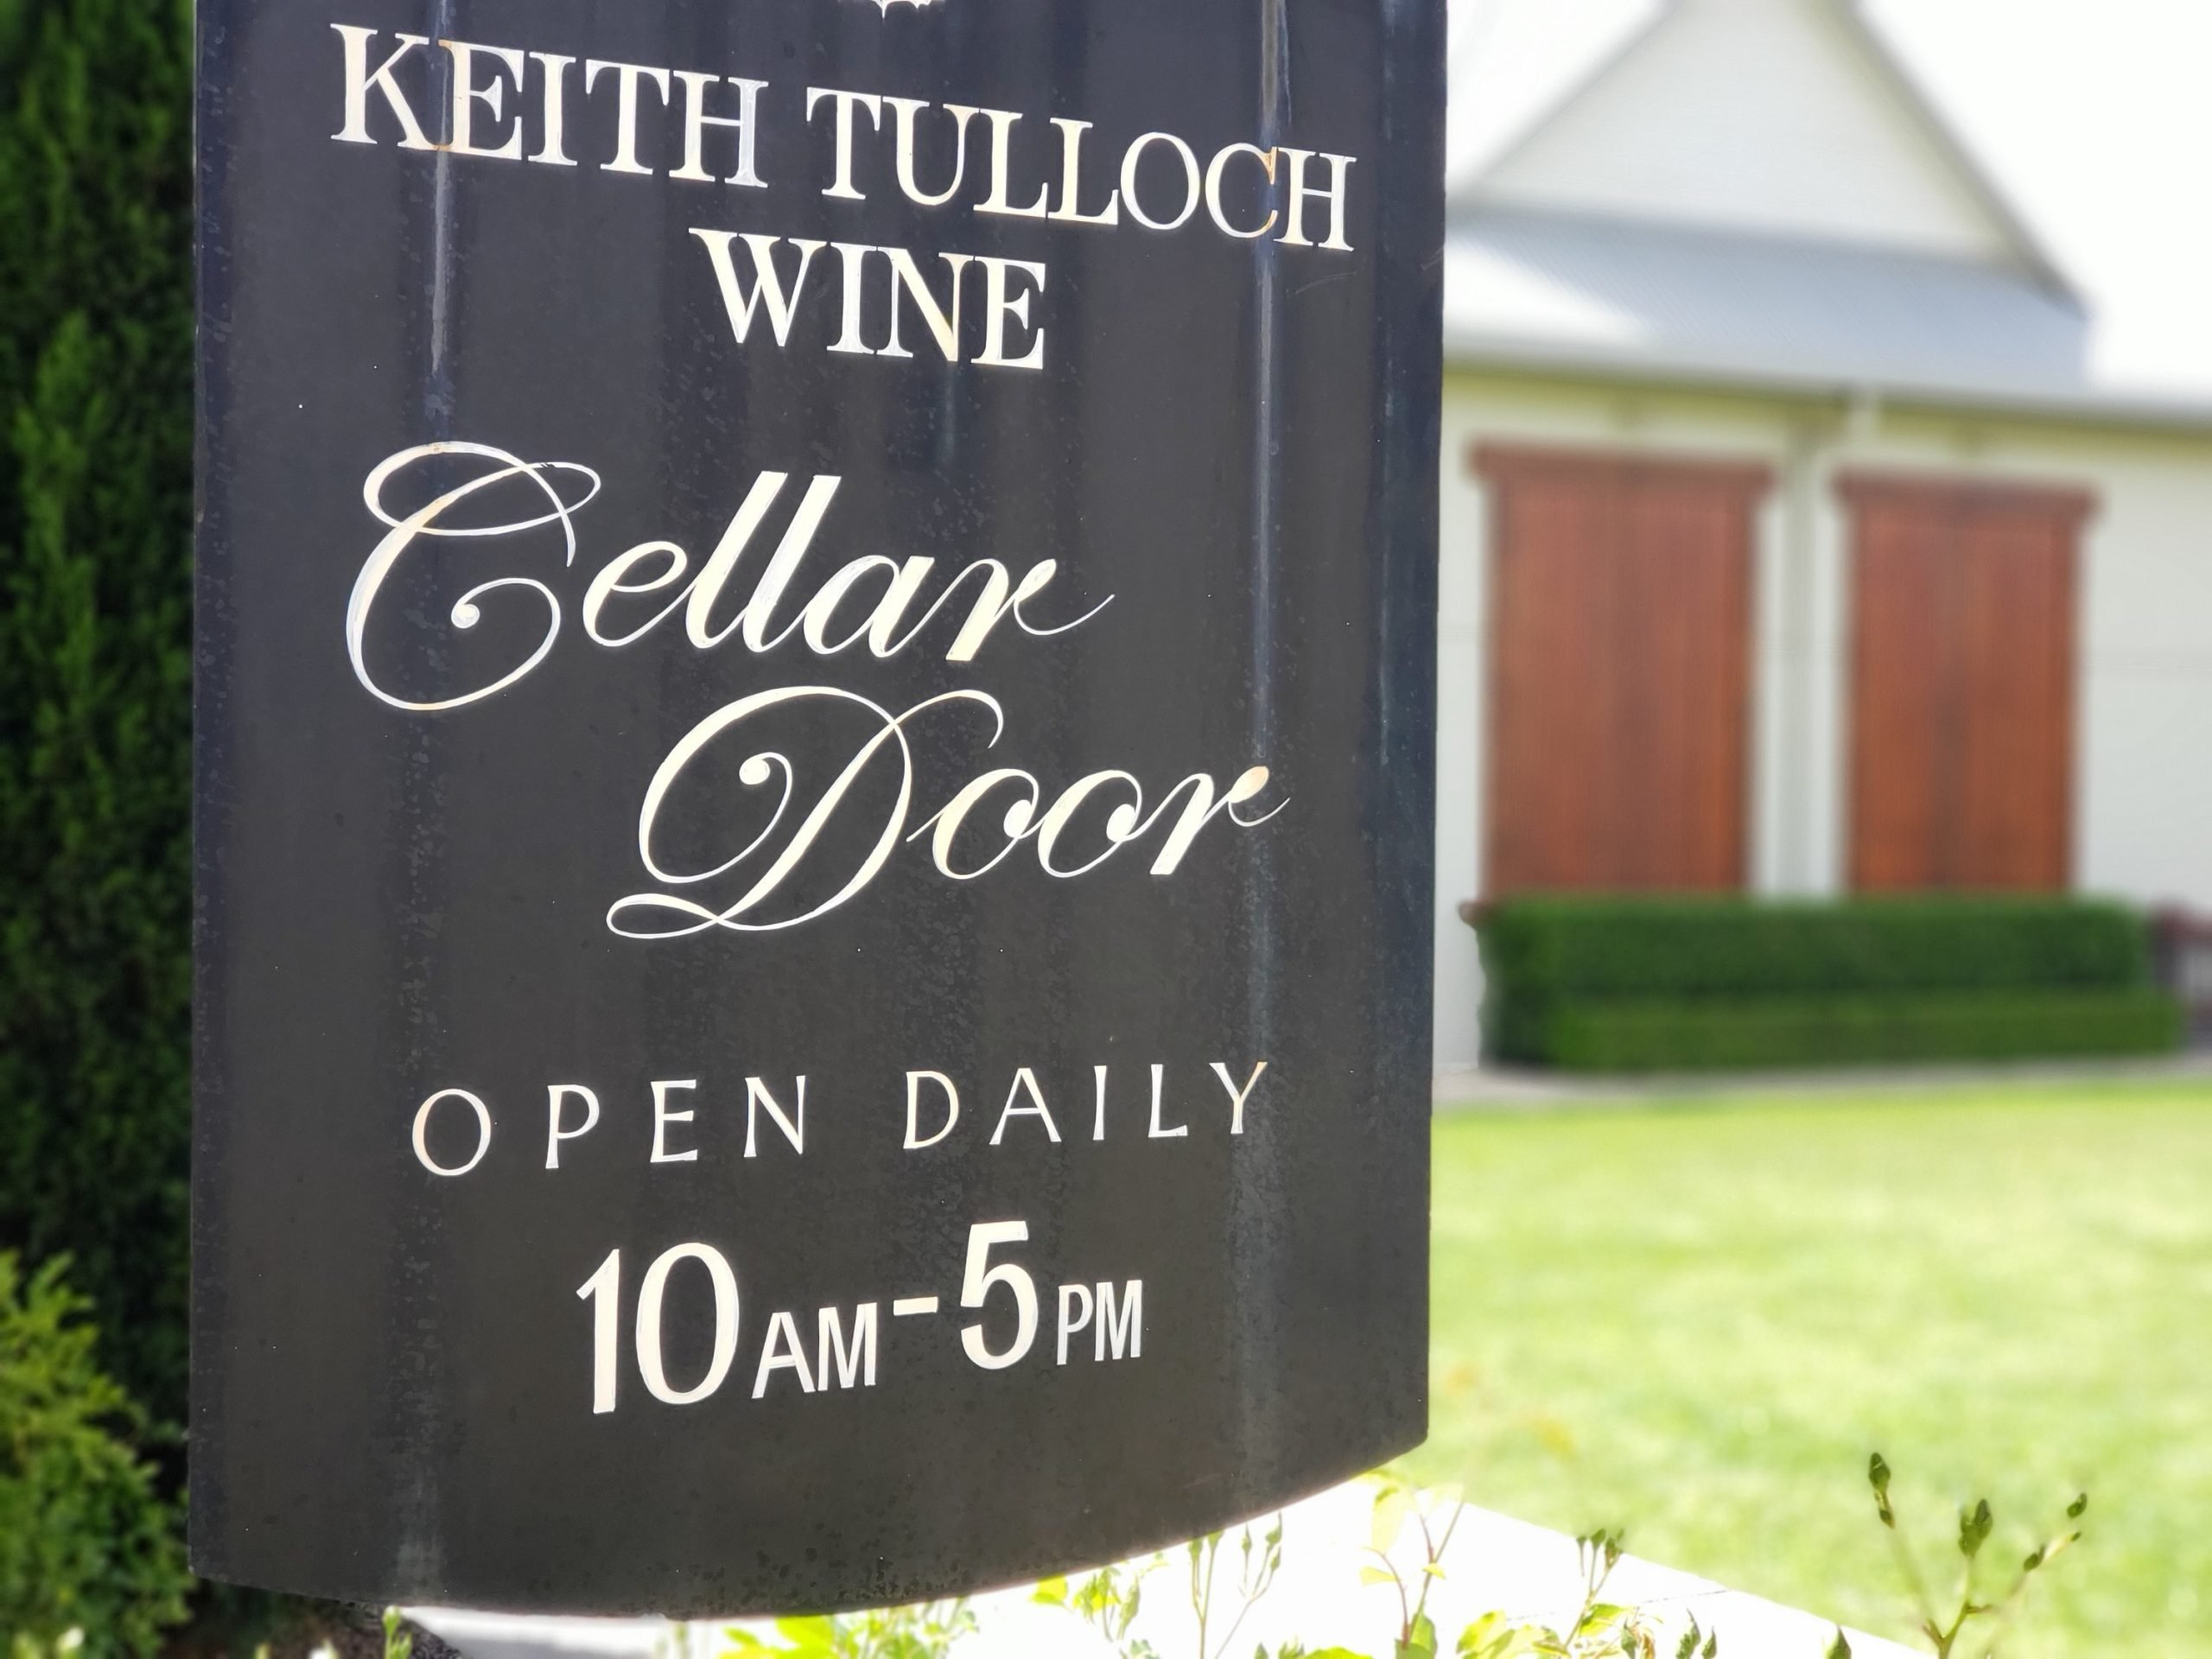 Keith Tulloch Wine Hunter Valley NSW Australia